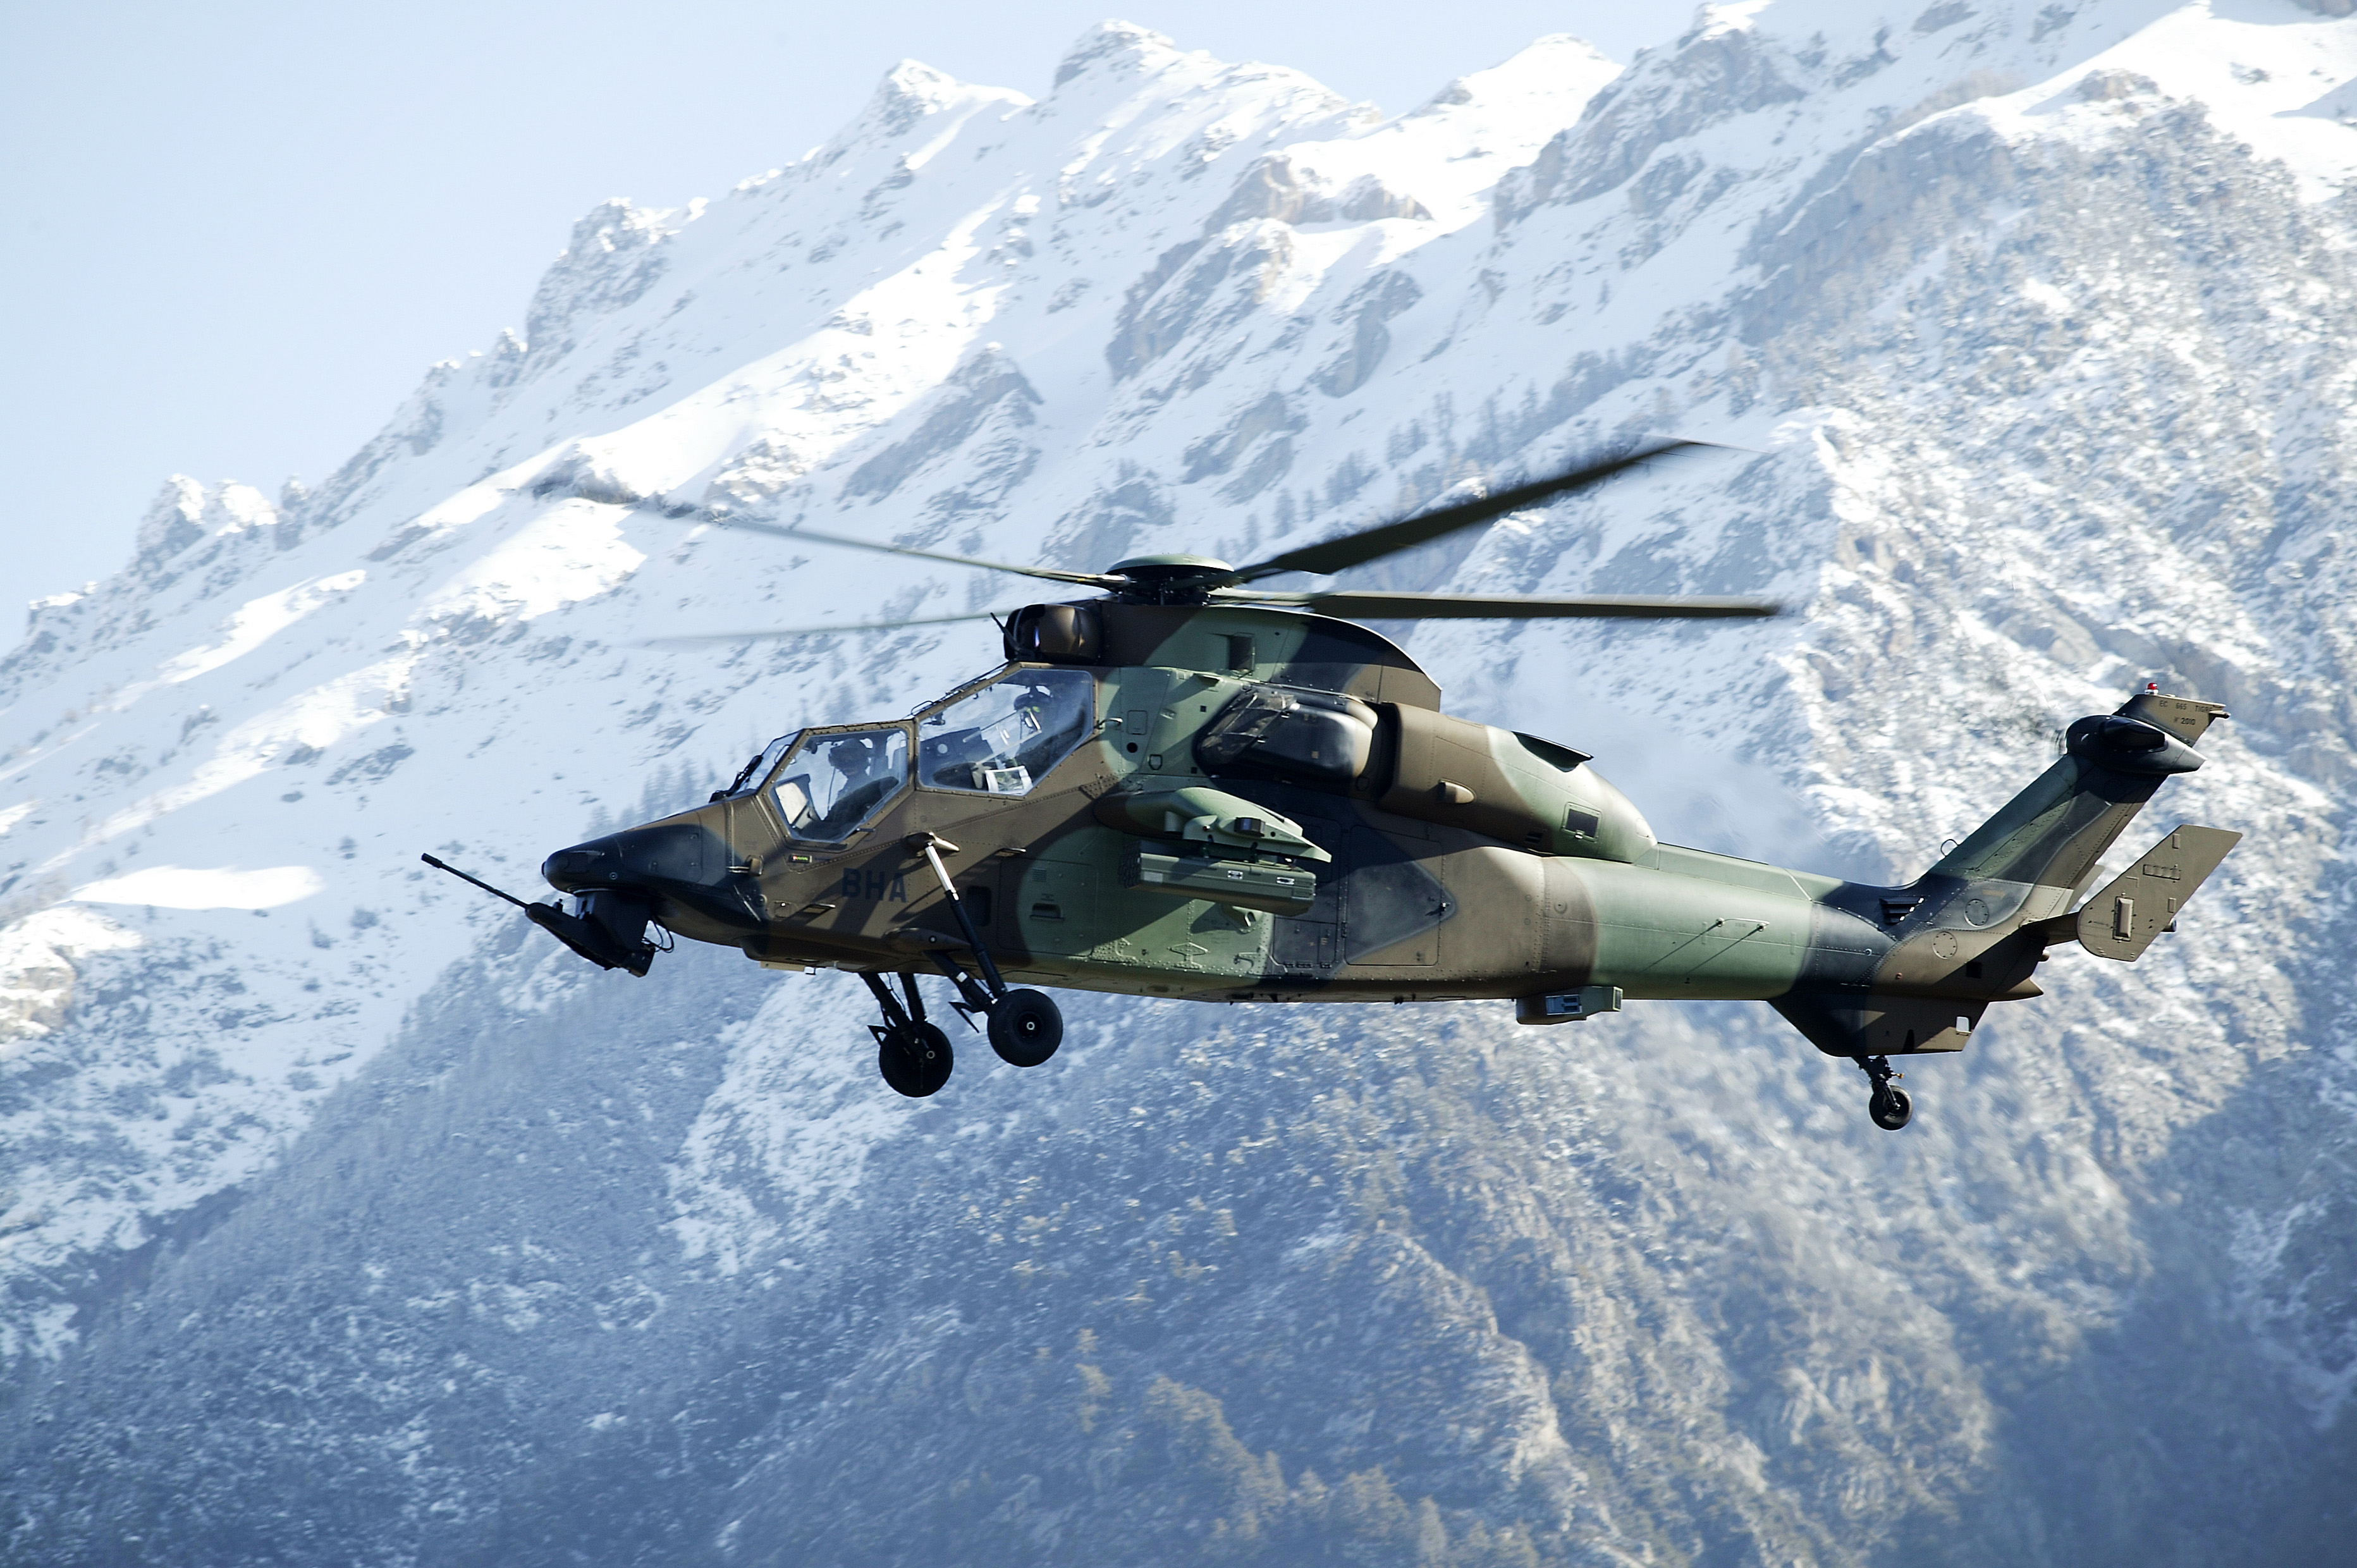 helicopter wallpaper 8014